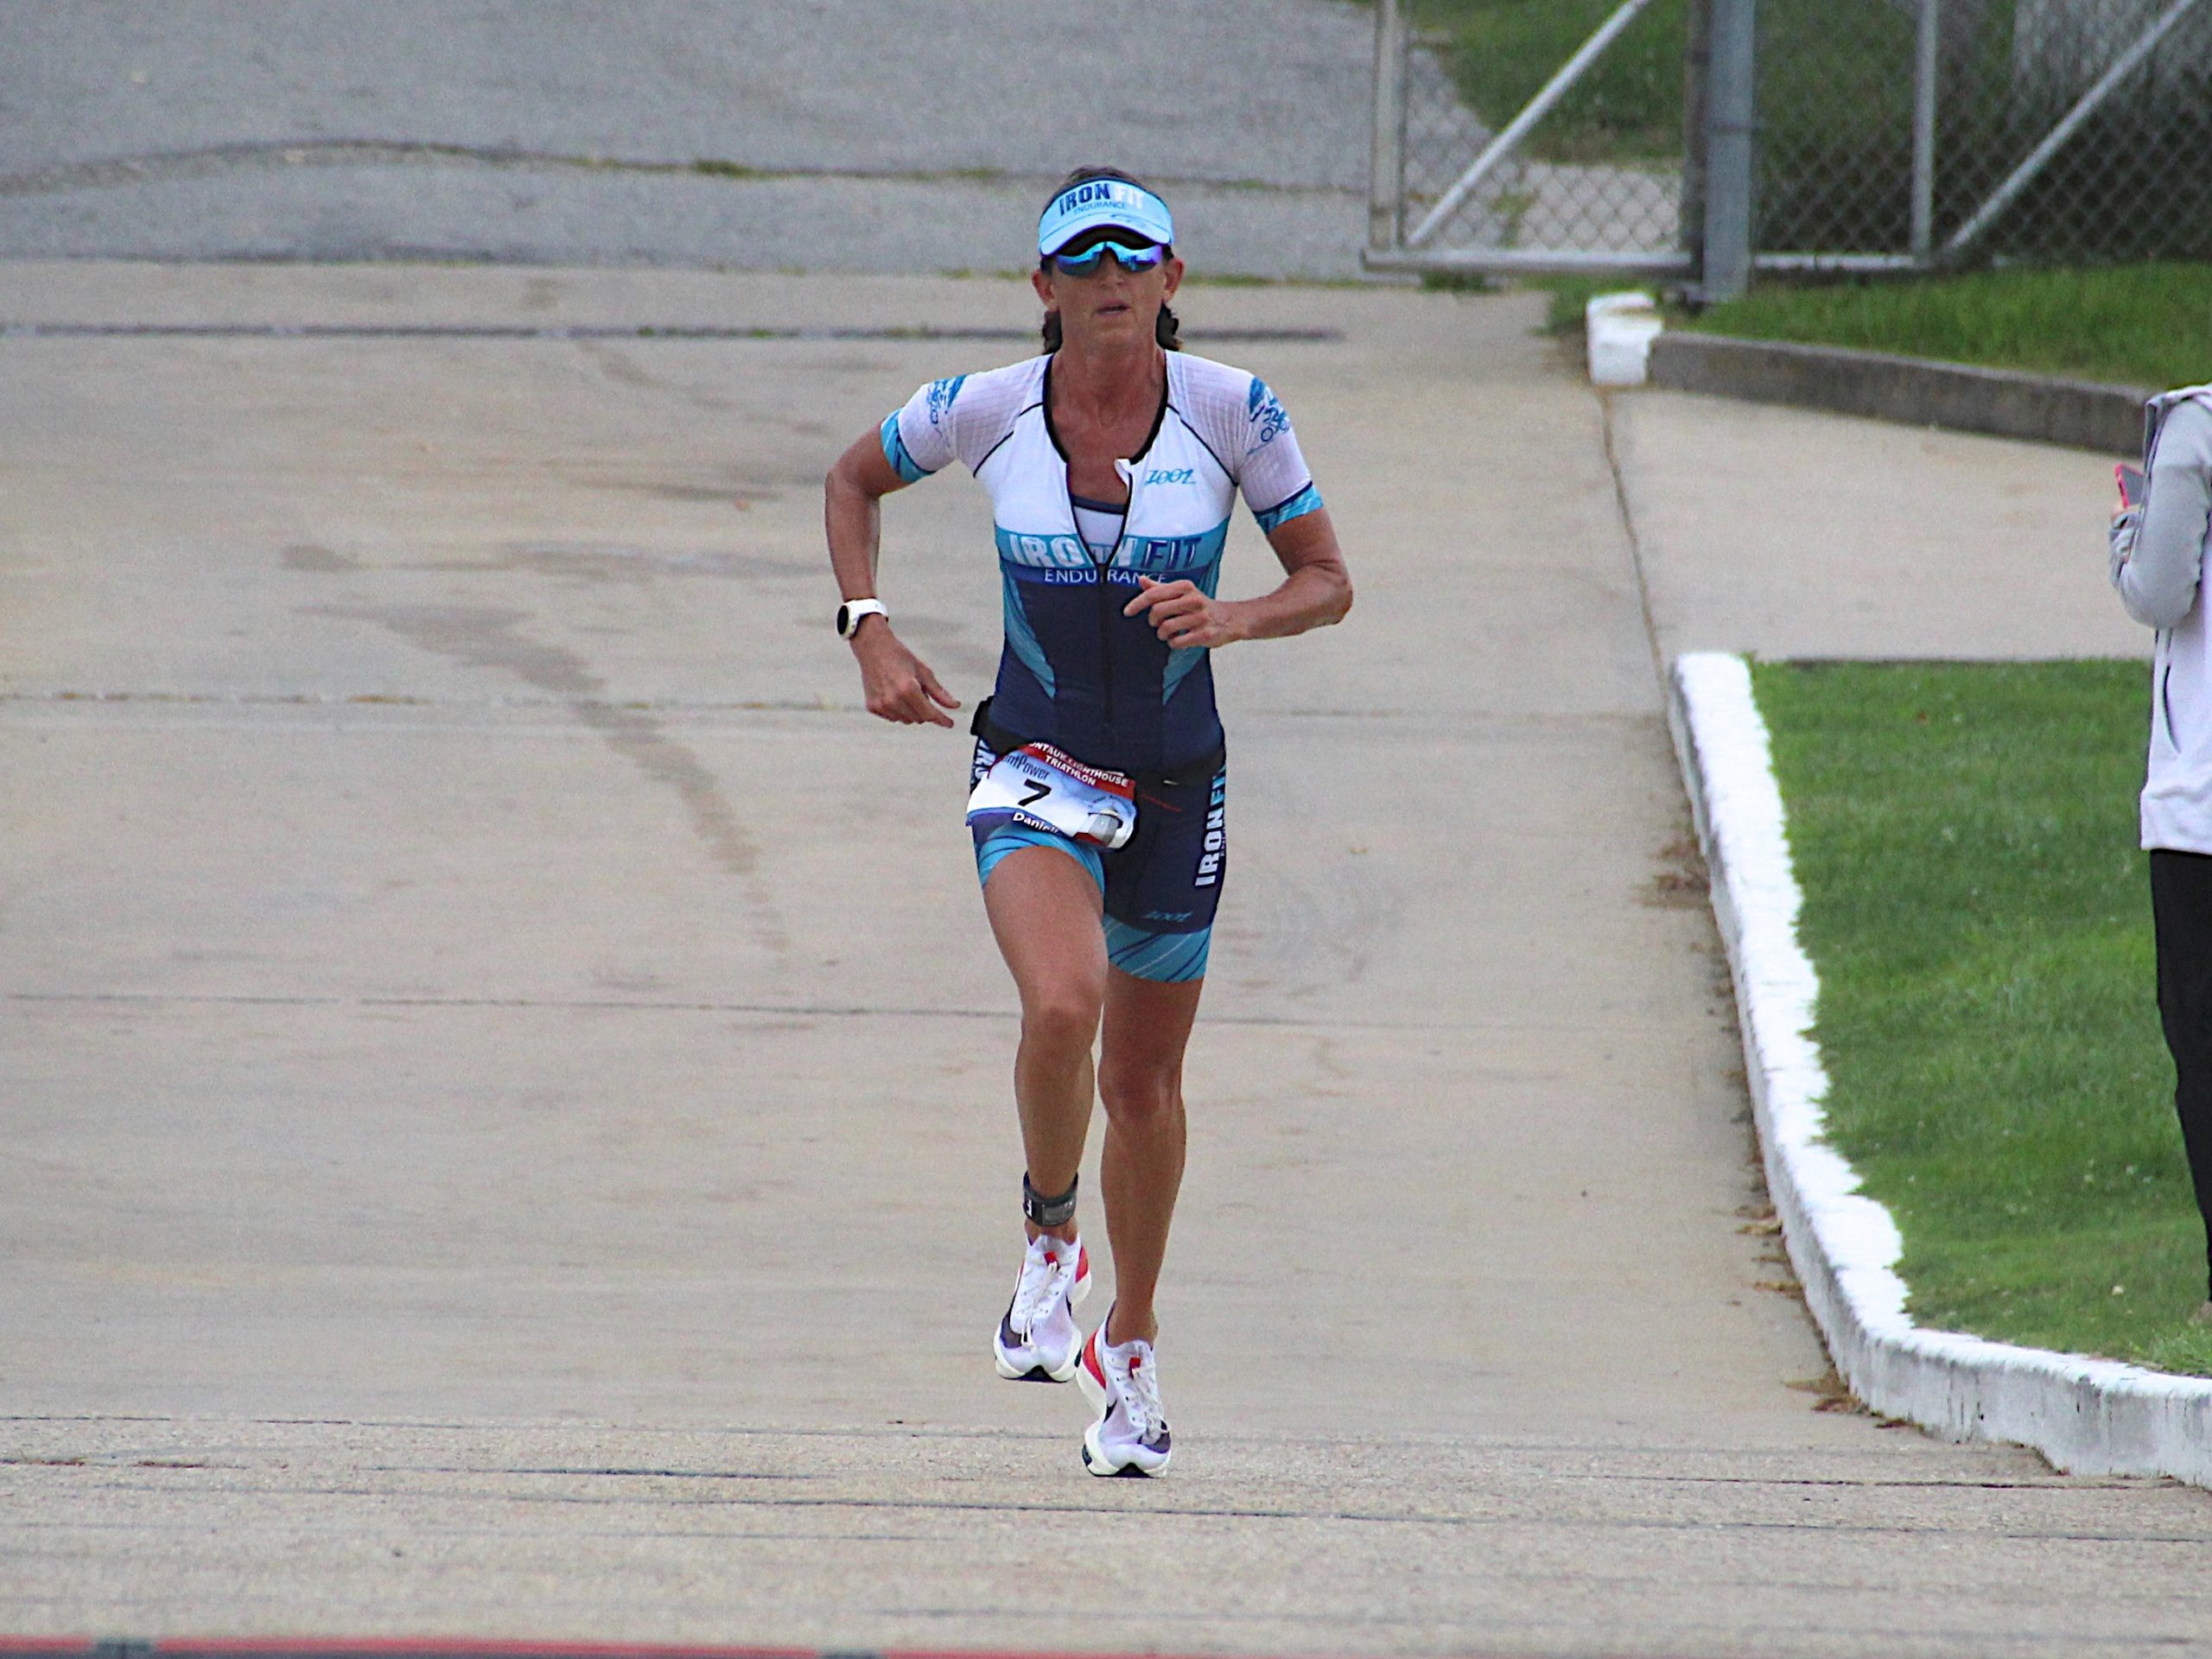 The women's champion, Danielle Sullivan, heads up the incline of the Montauk Lighthouse toward the finish line.